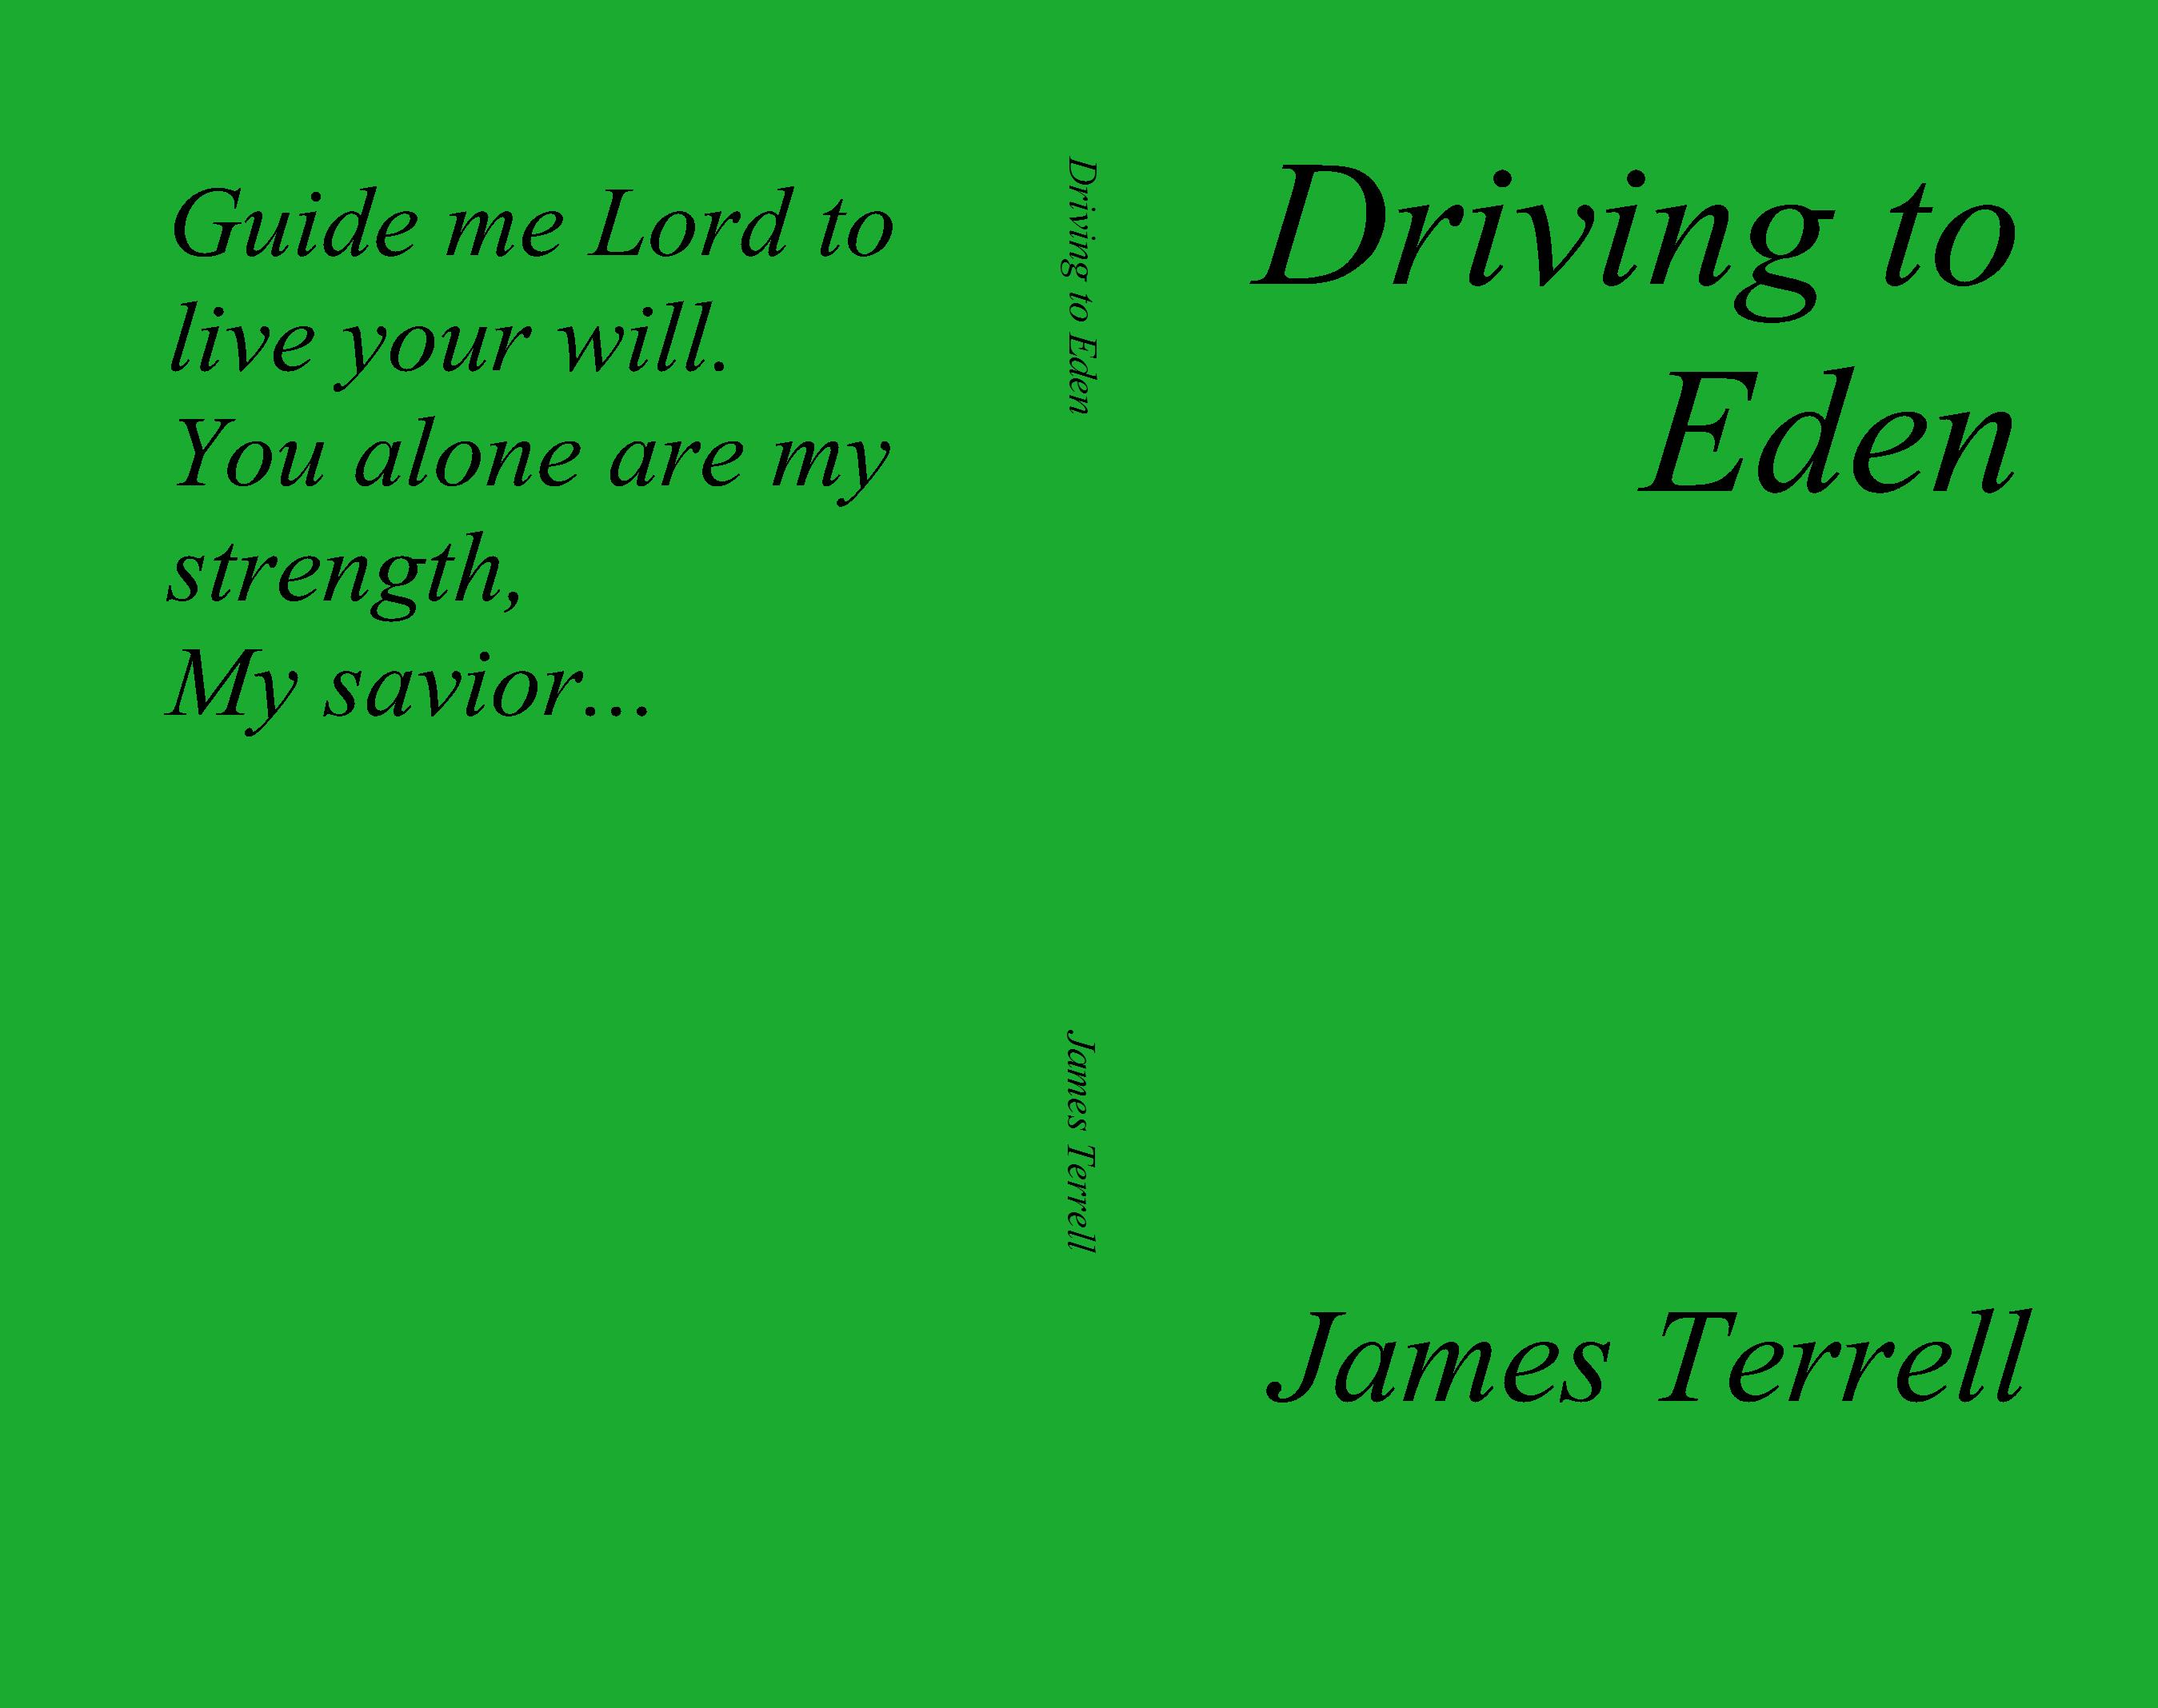 Driving to Eden cover image